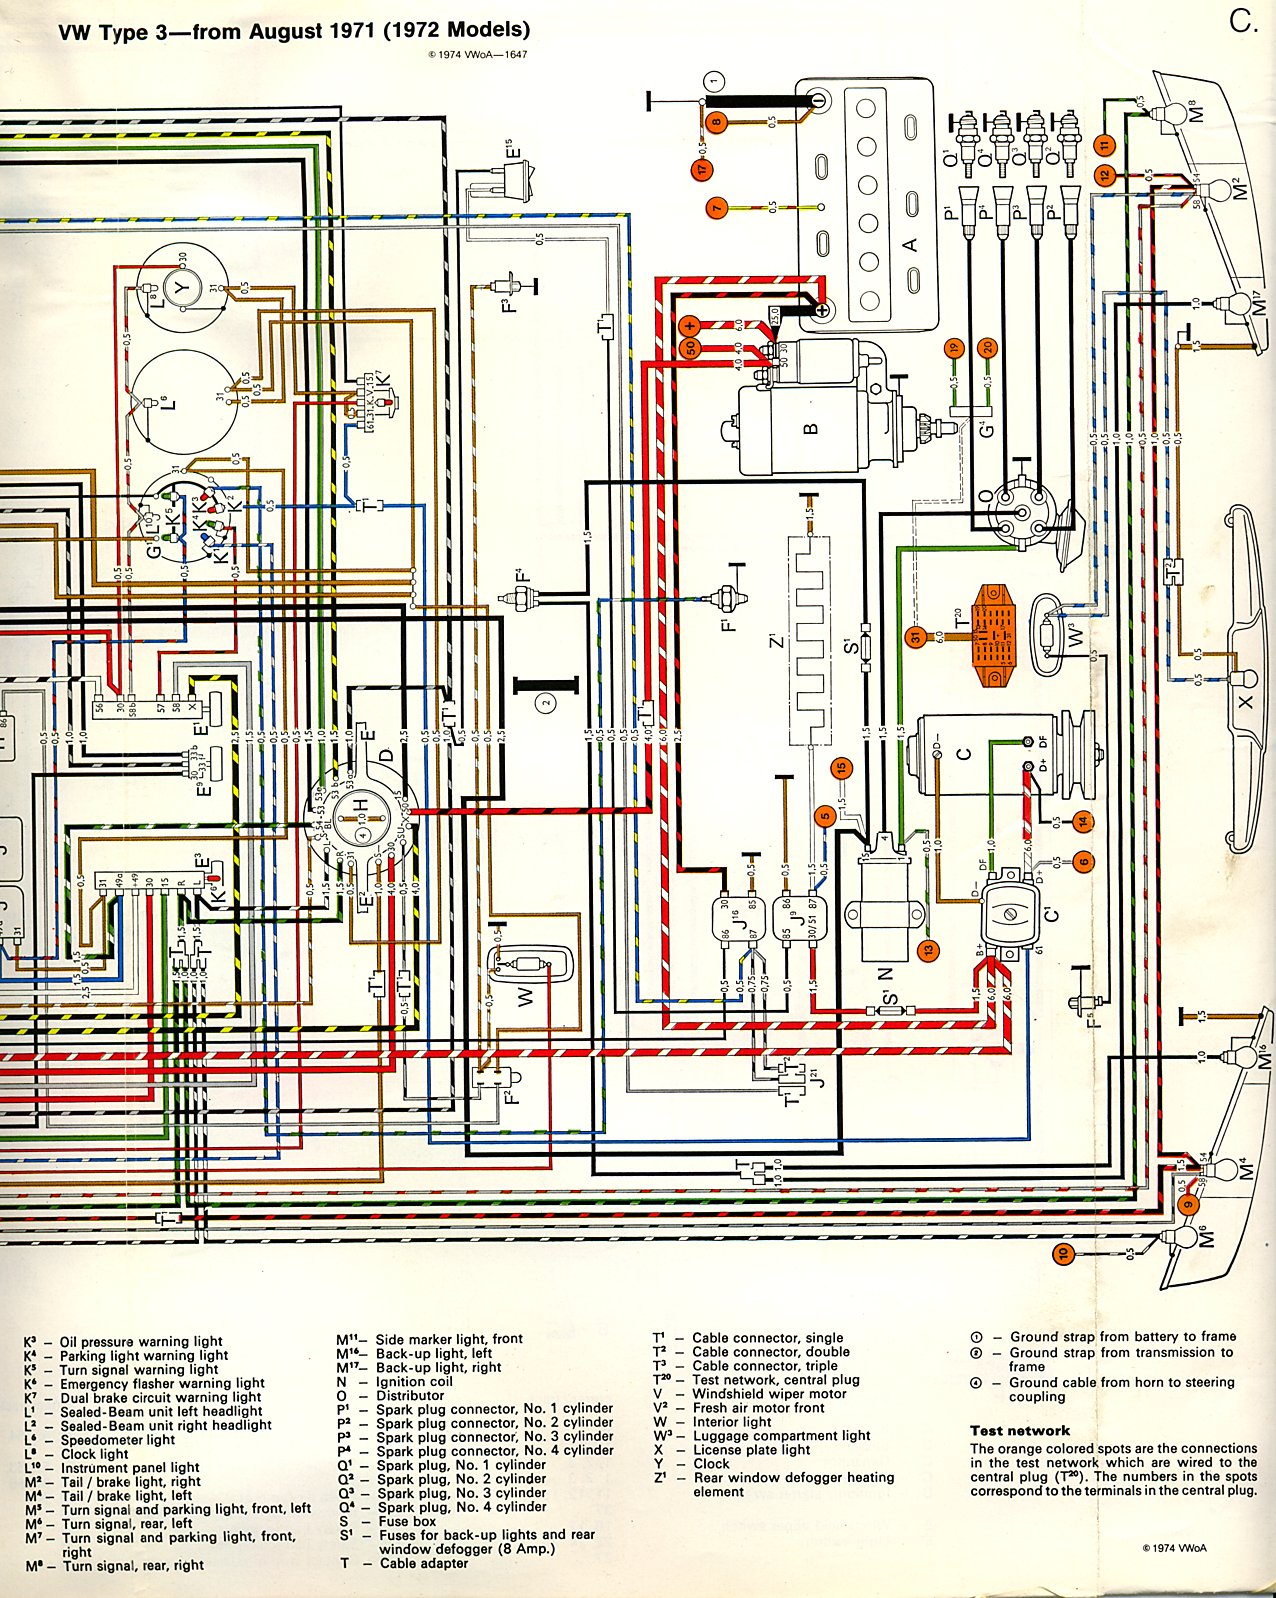 72 Vw Wiring Diagram Schematics Diagrams Dune Buggy Alternator Thesamba Com Type 3 Rh Beetle 1974